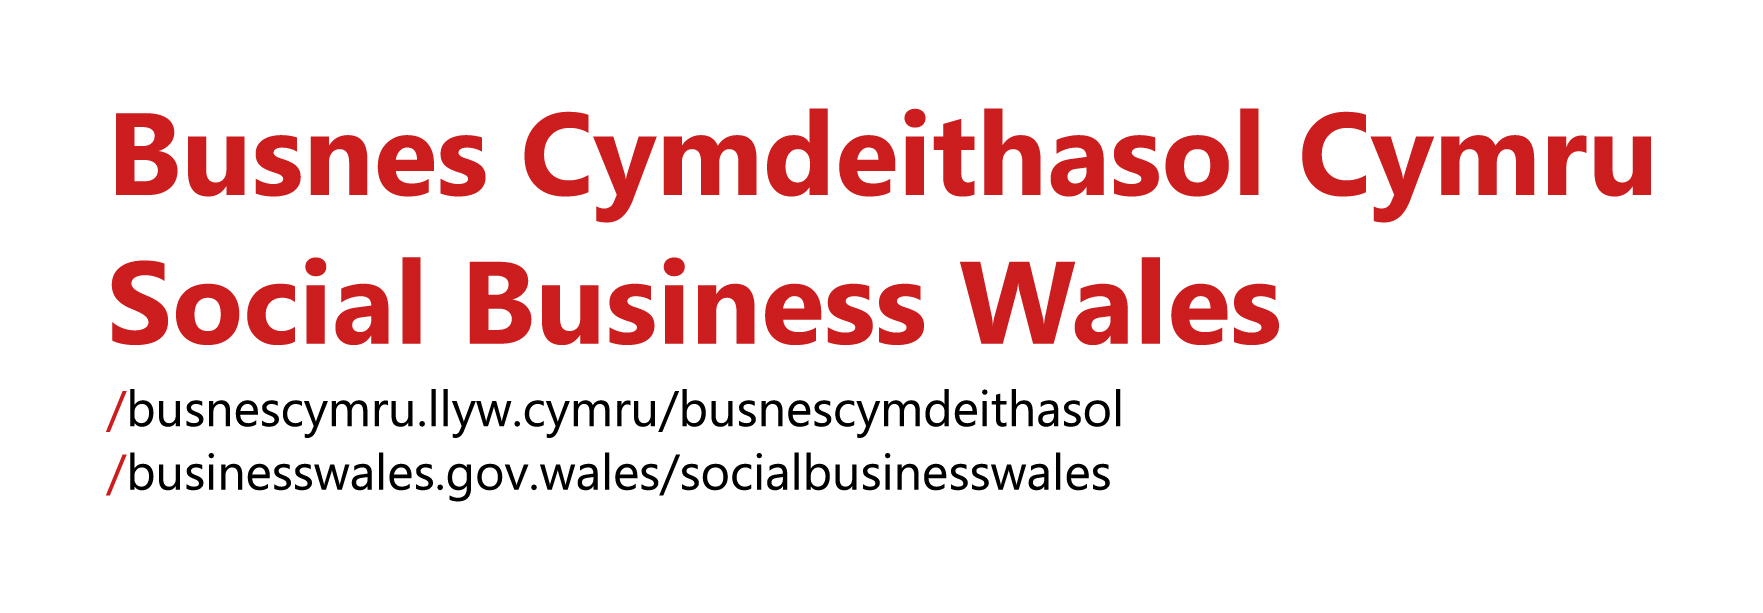 Social Business Wales